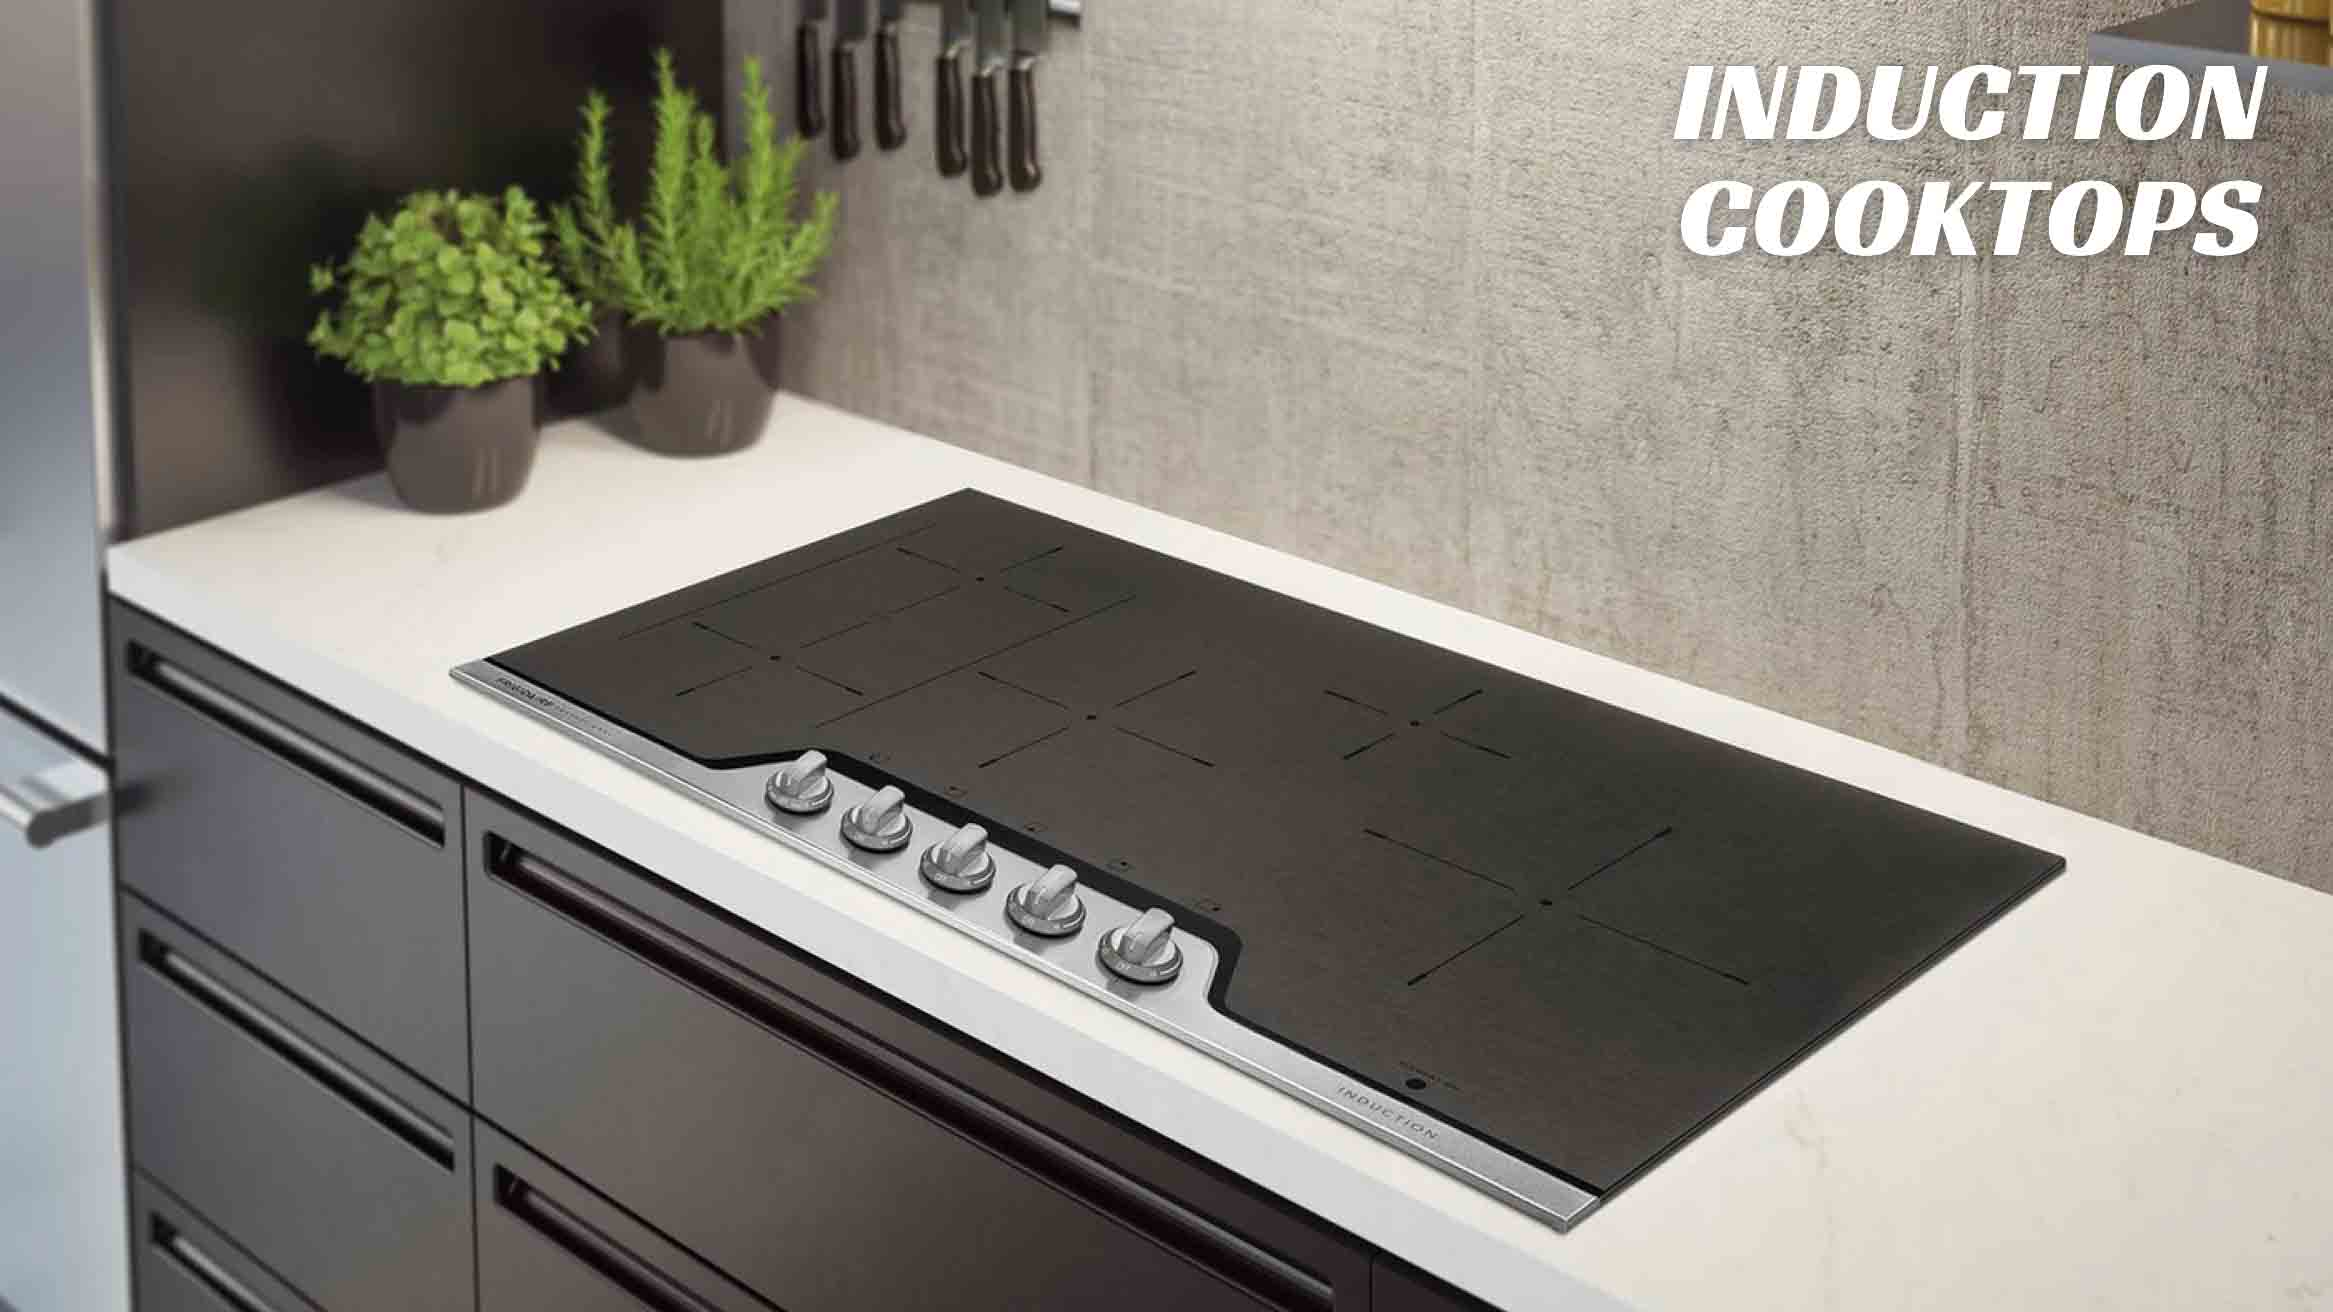 induction cooktop - Steel and Water